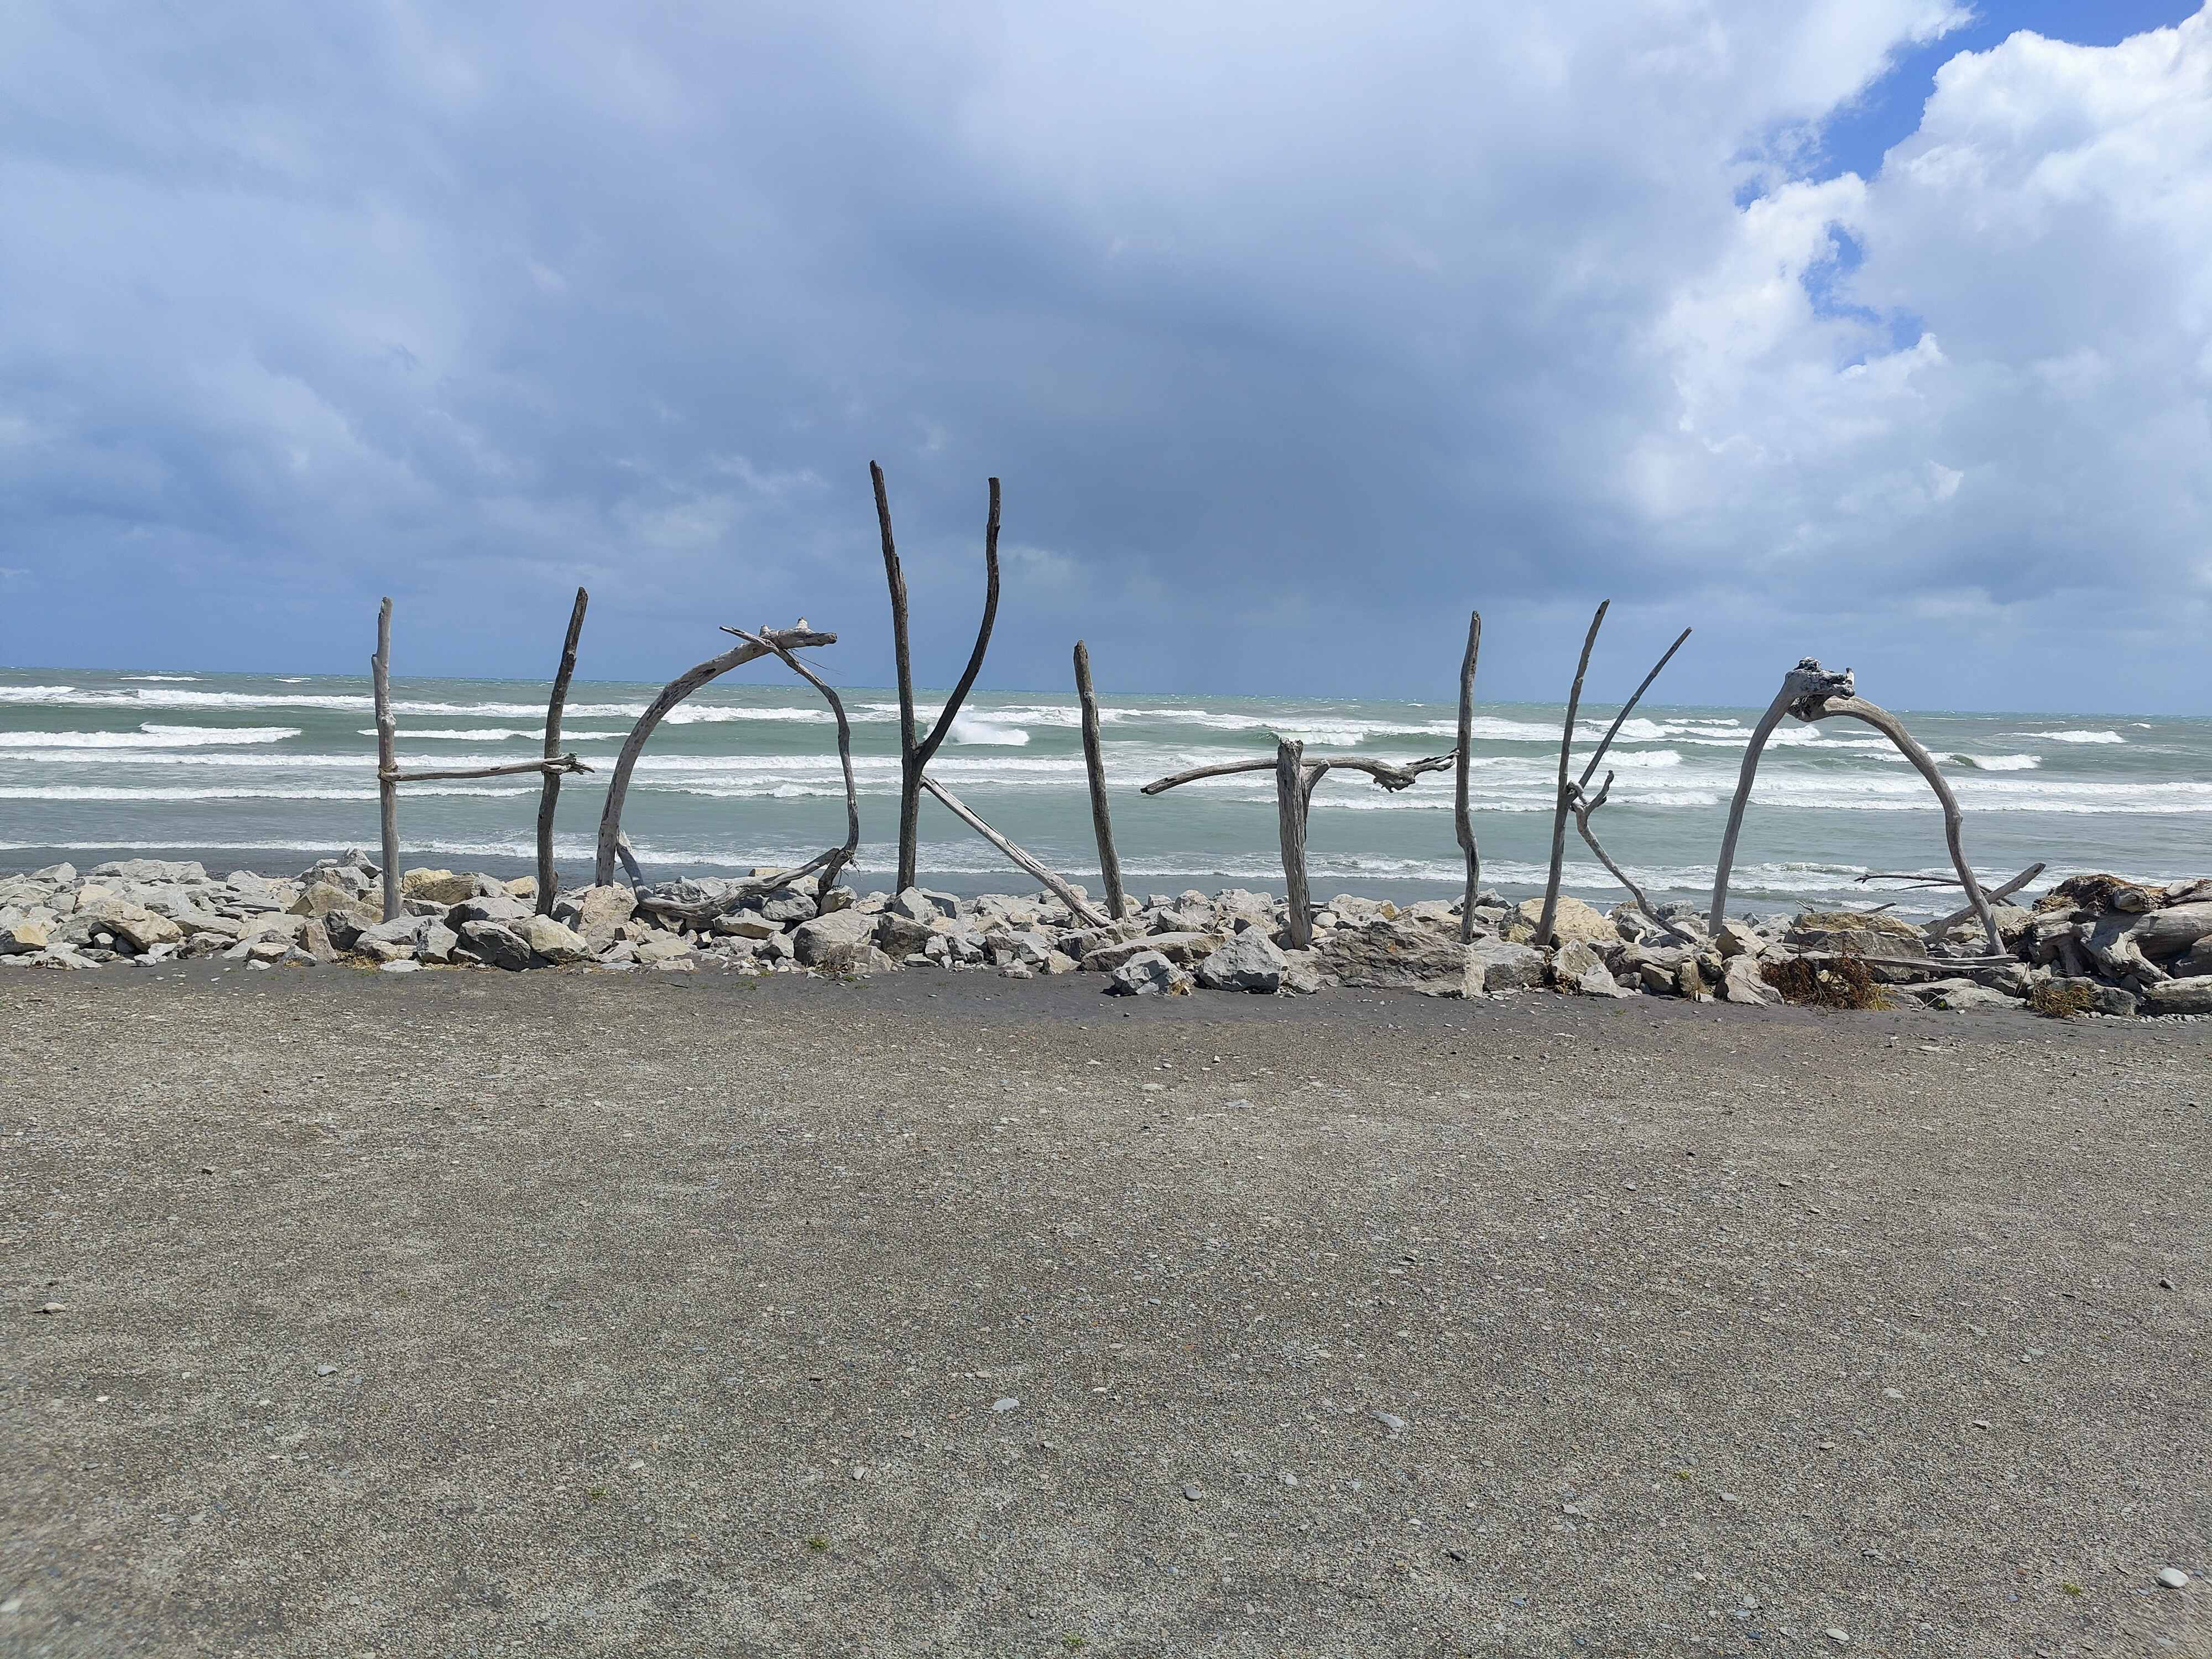 A sign of Hokitika made of sticks on the beach